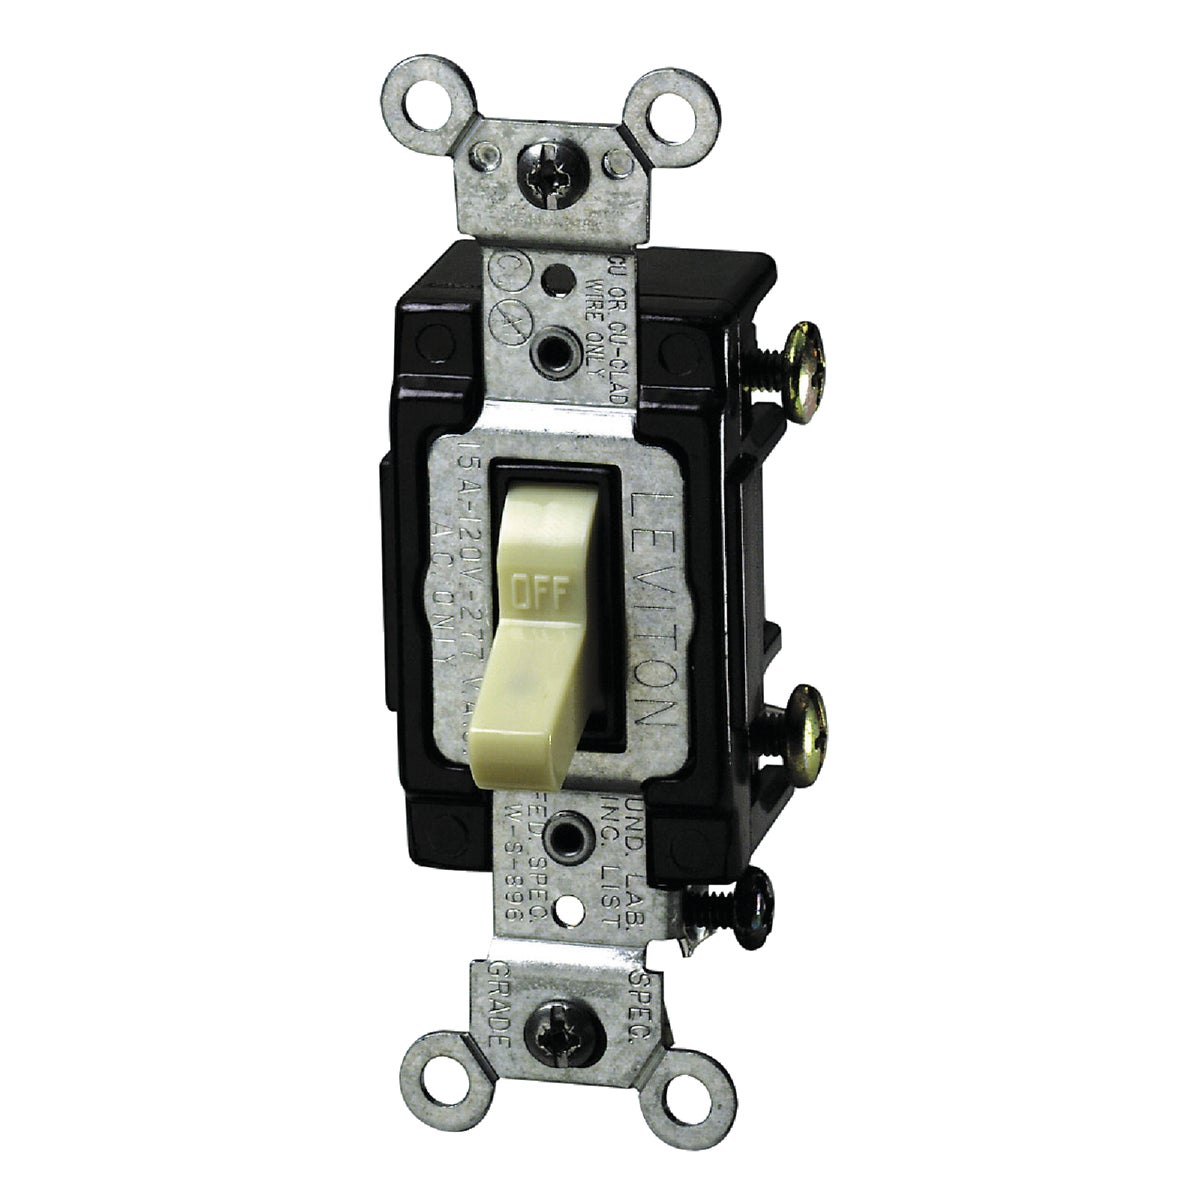 IV 1-POLE LTD SWITCH - S01-5501-LHI by Leviton Mfg Co